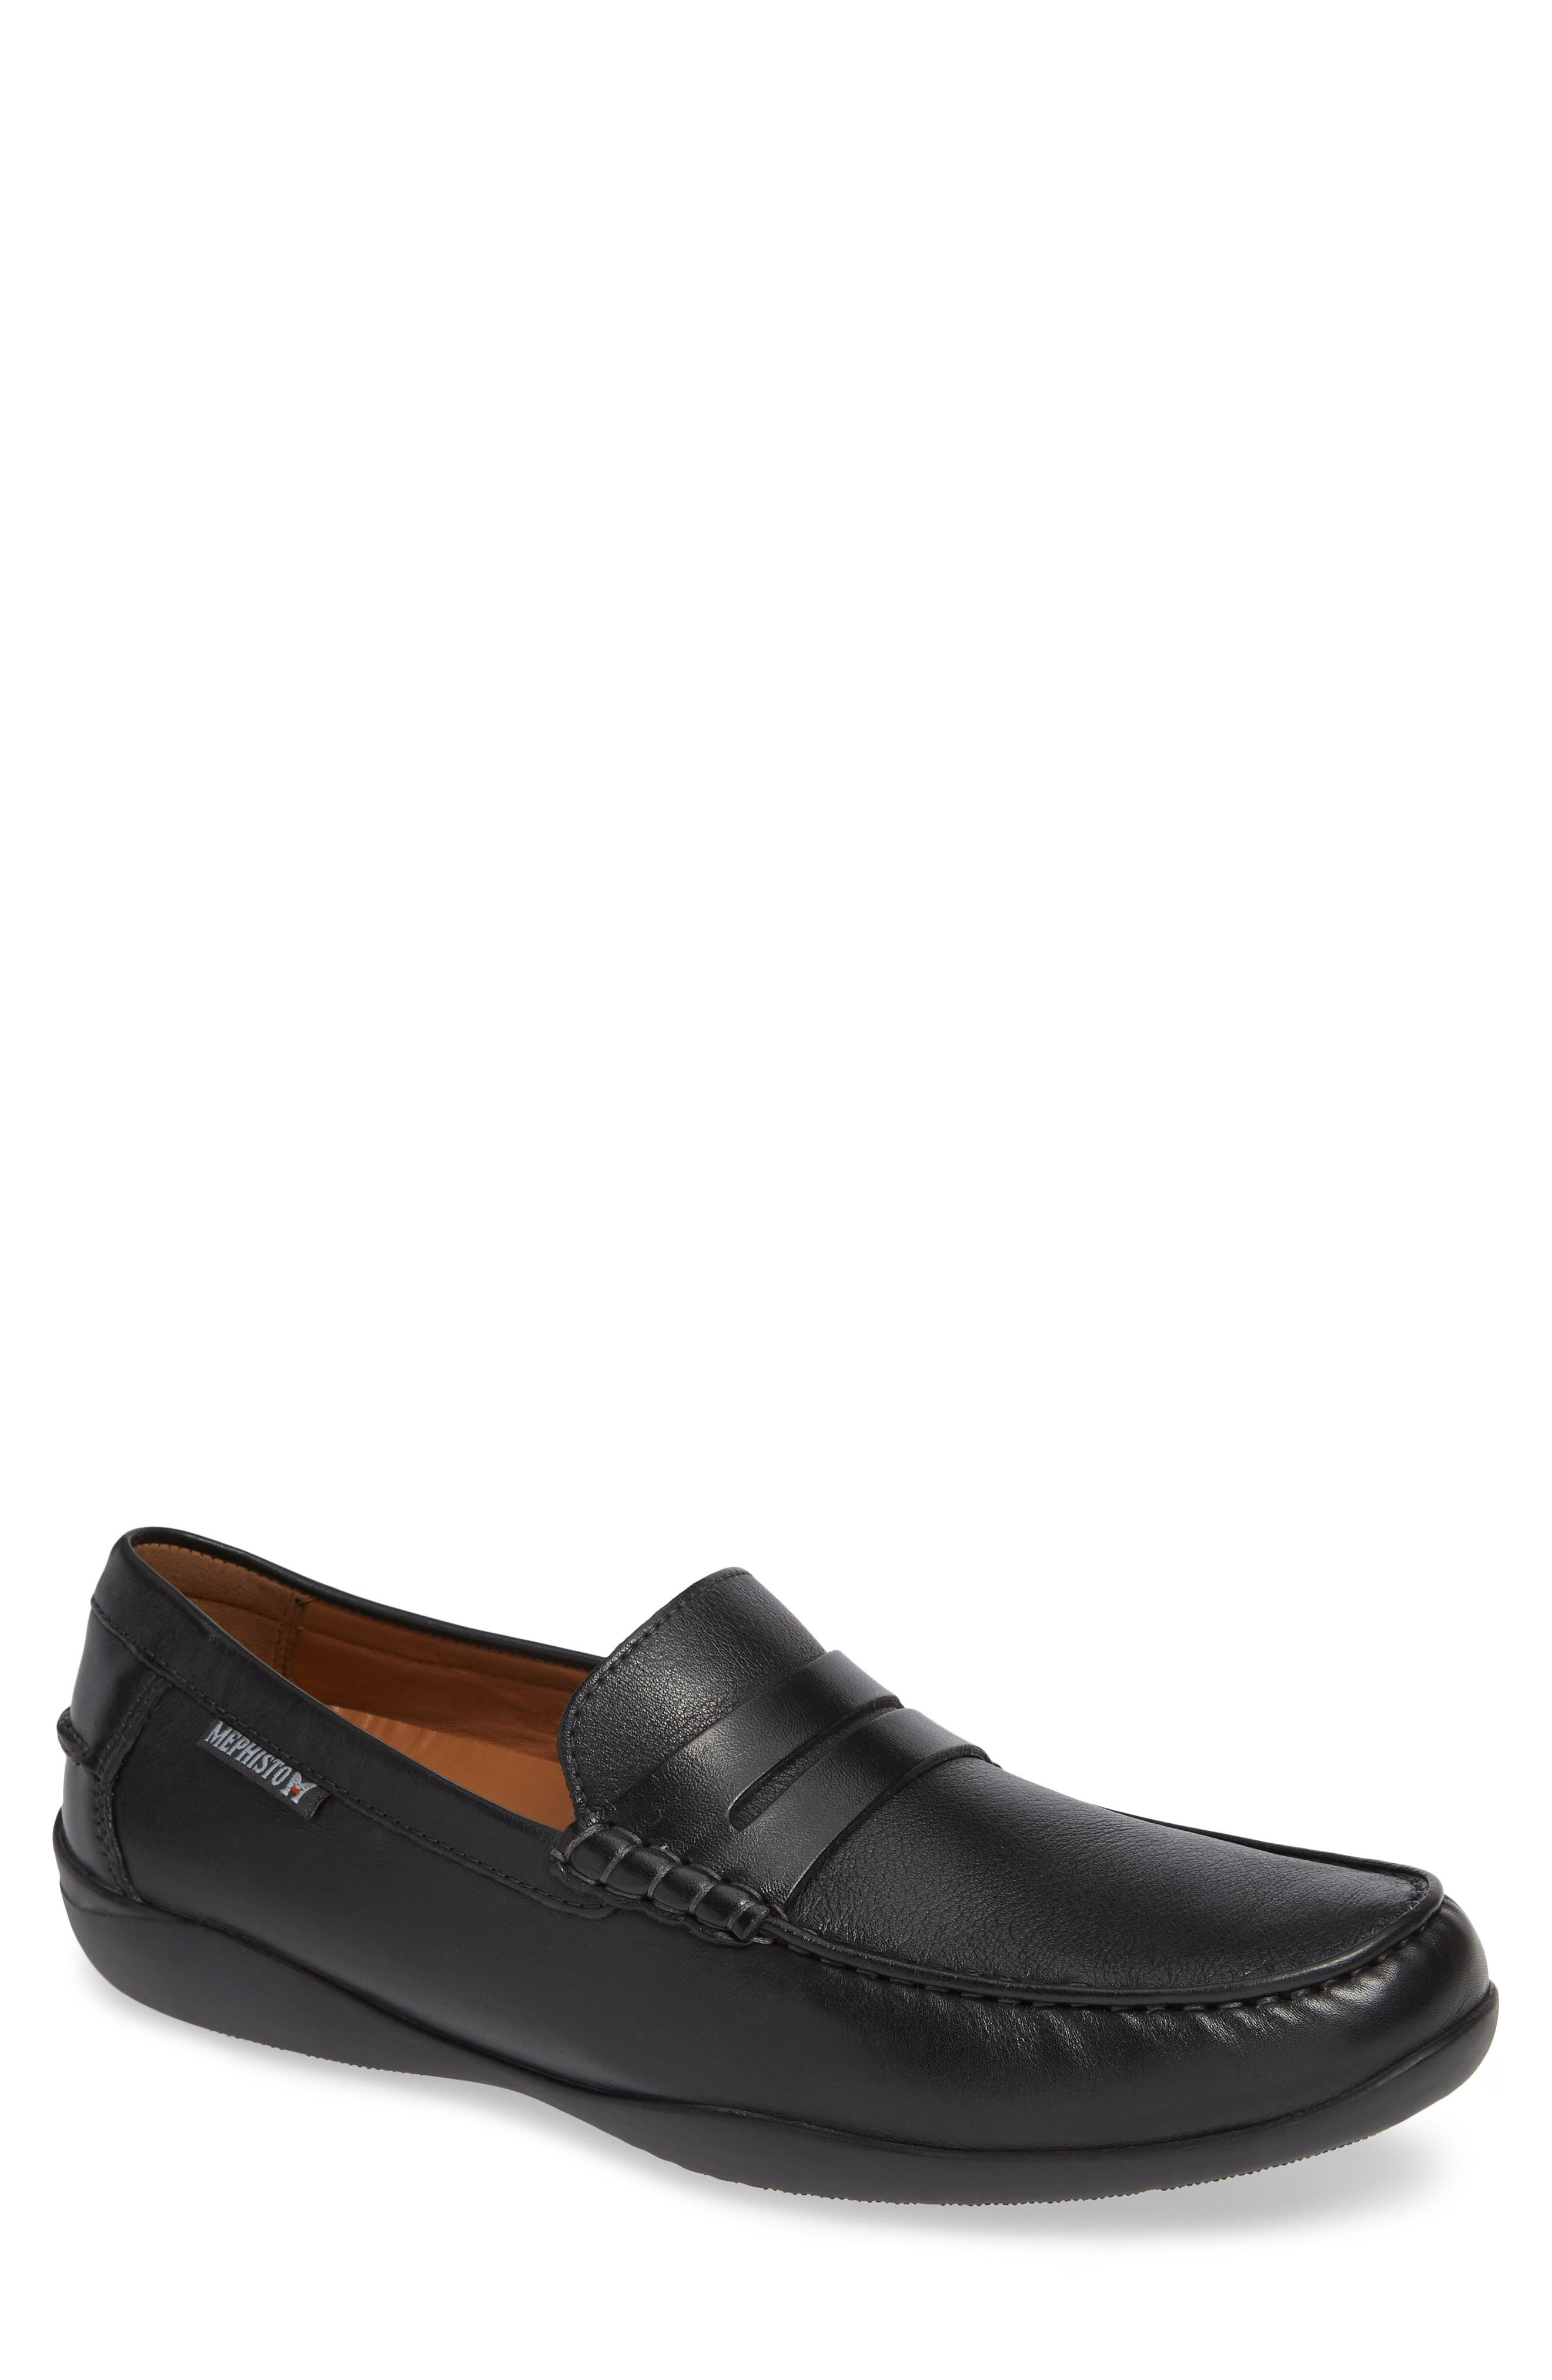 Igor Penny Loafer,                             Main thumbnail 1, color,                             001